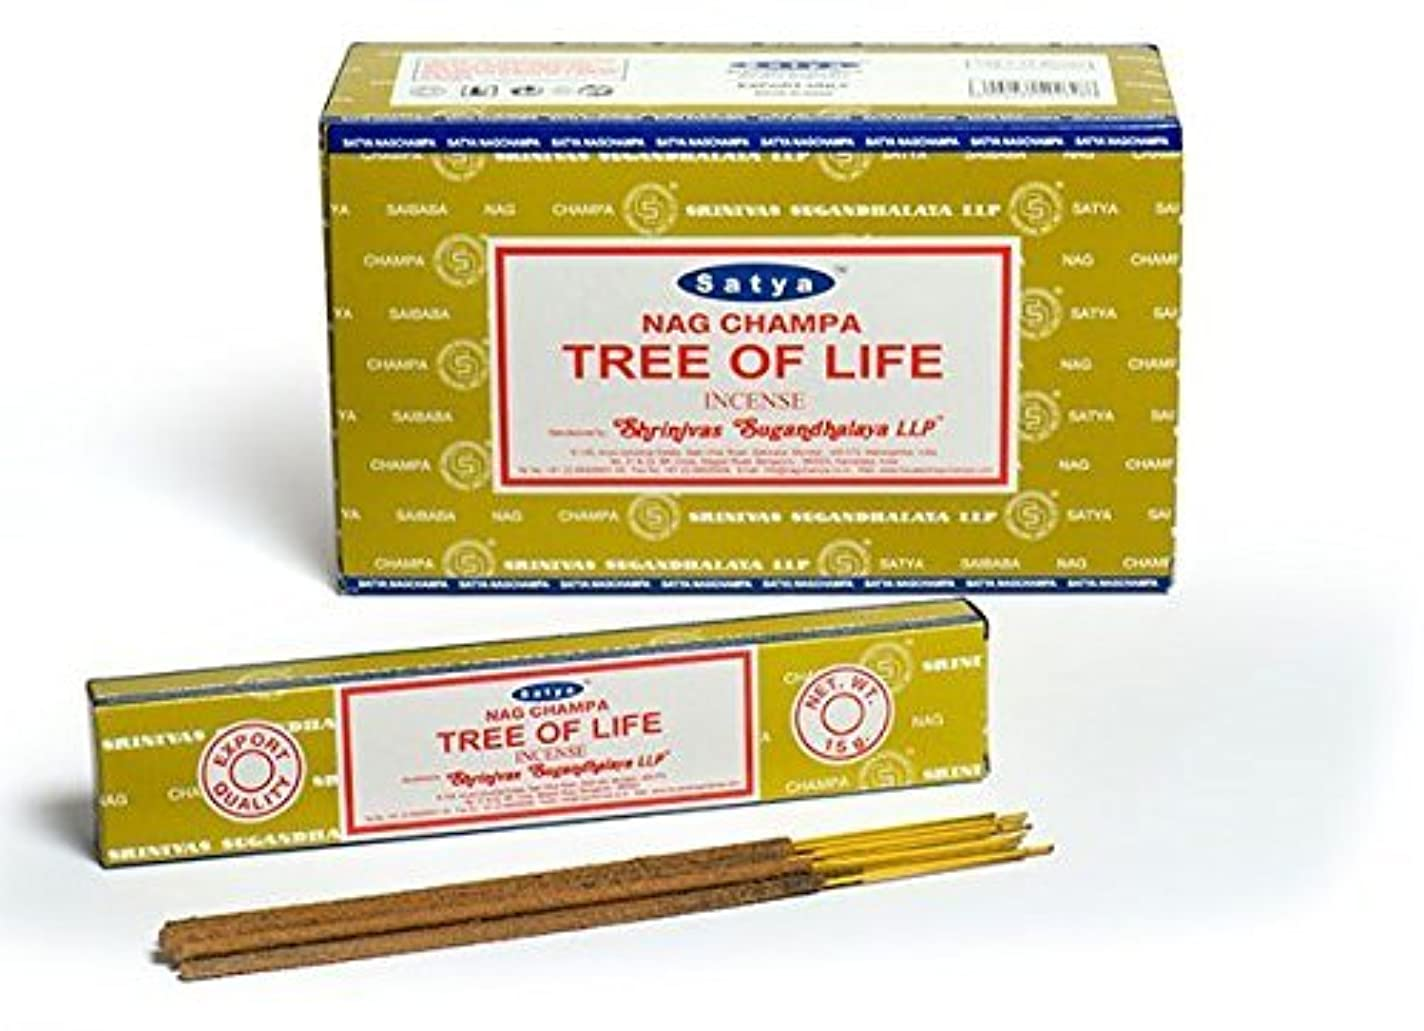 ラウズサンダル変更可能Buycrafty Satya Nag Champa Tree of Life Incense Sticks 180 Grams Box (15g x 12 Boxes)